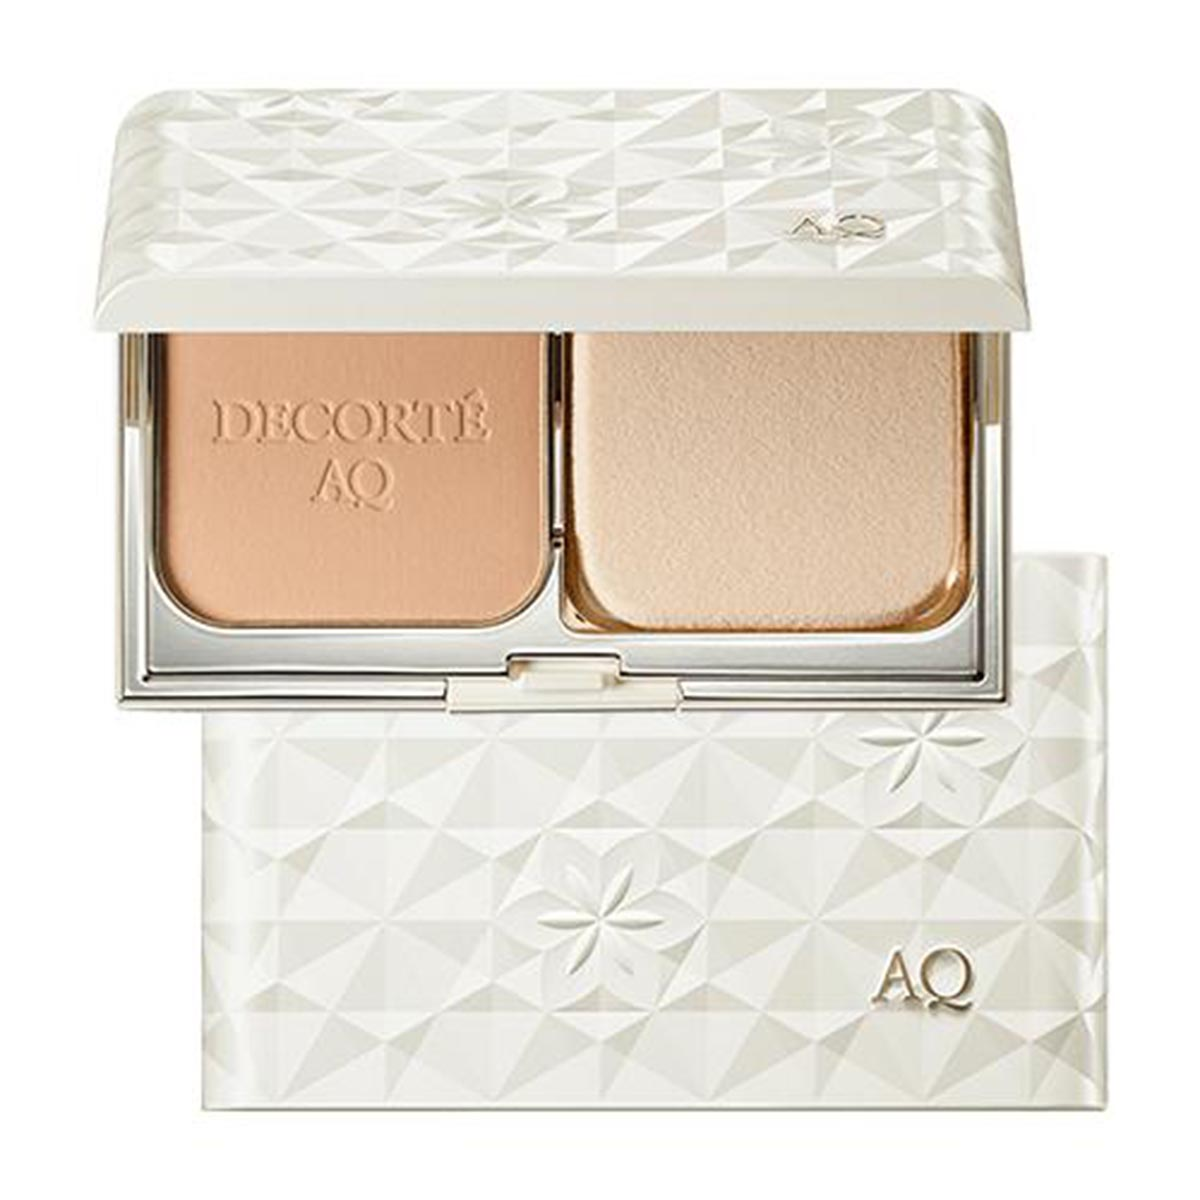 Decorte aq radiant glow powder foundation 401 11gr